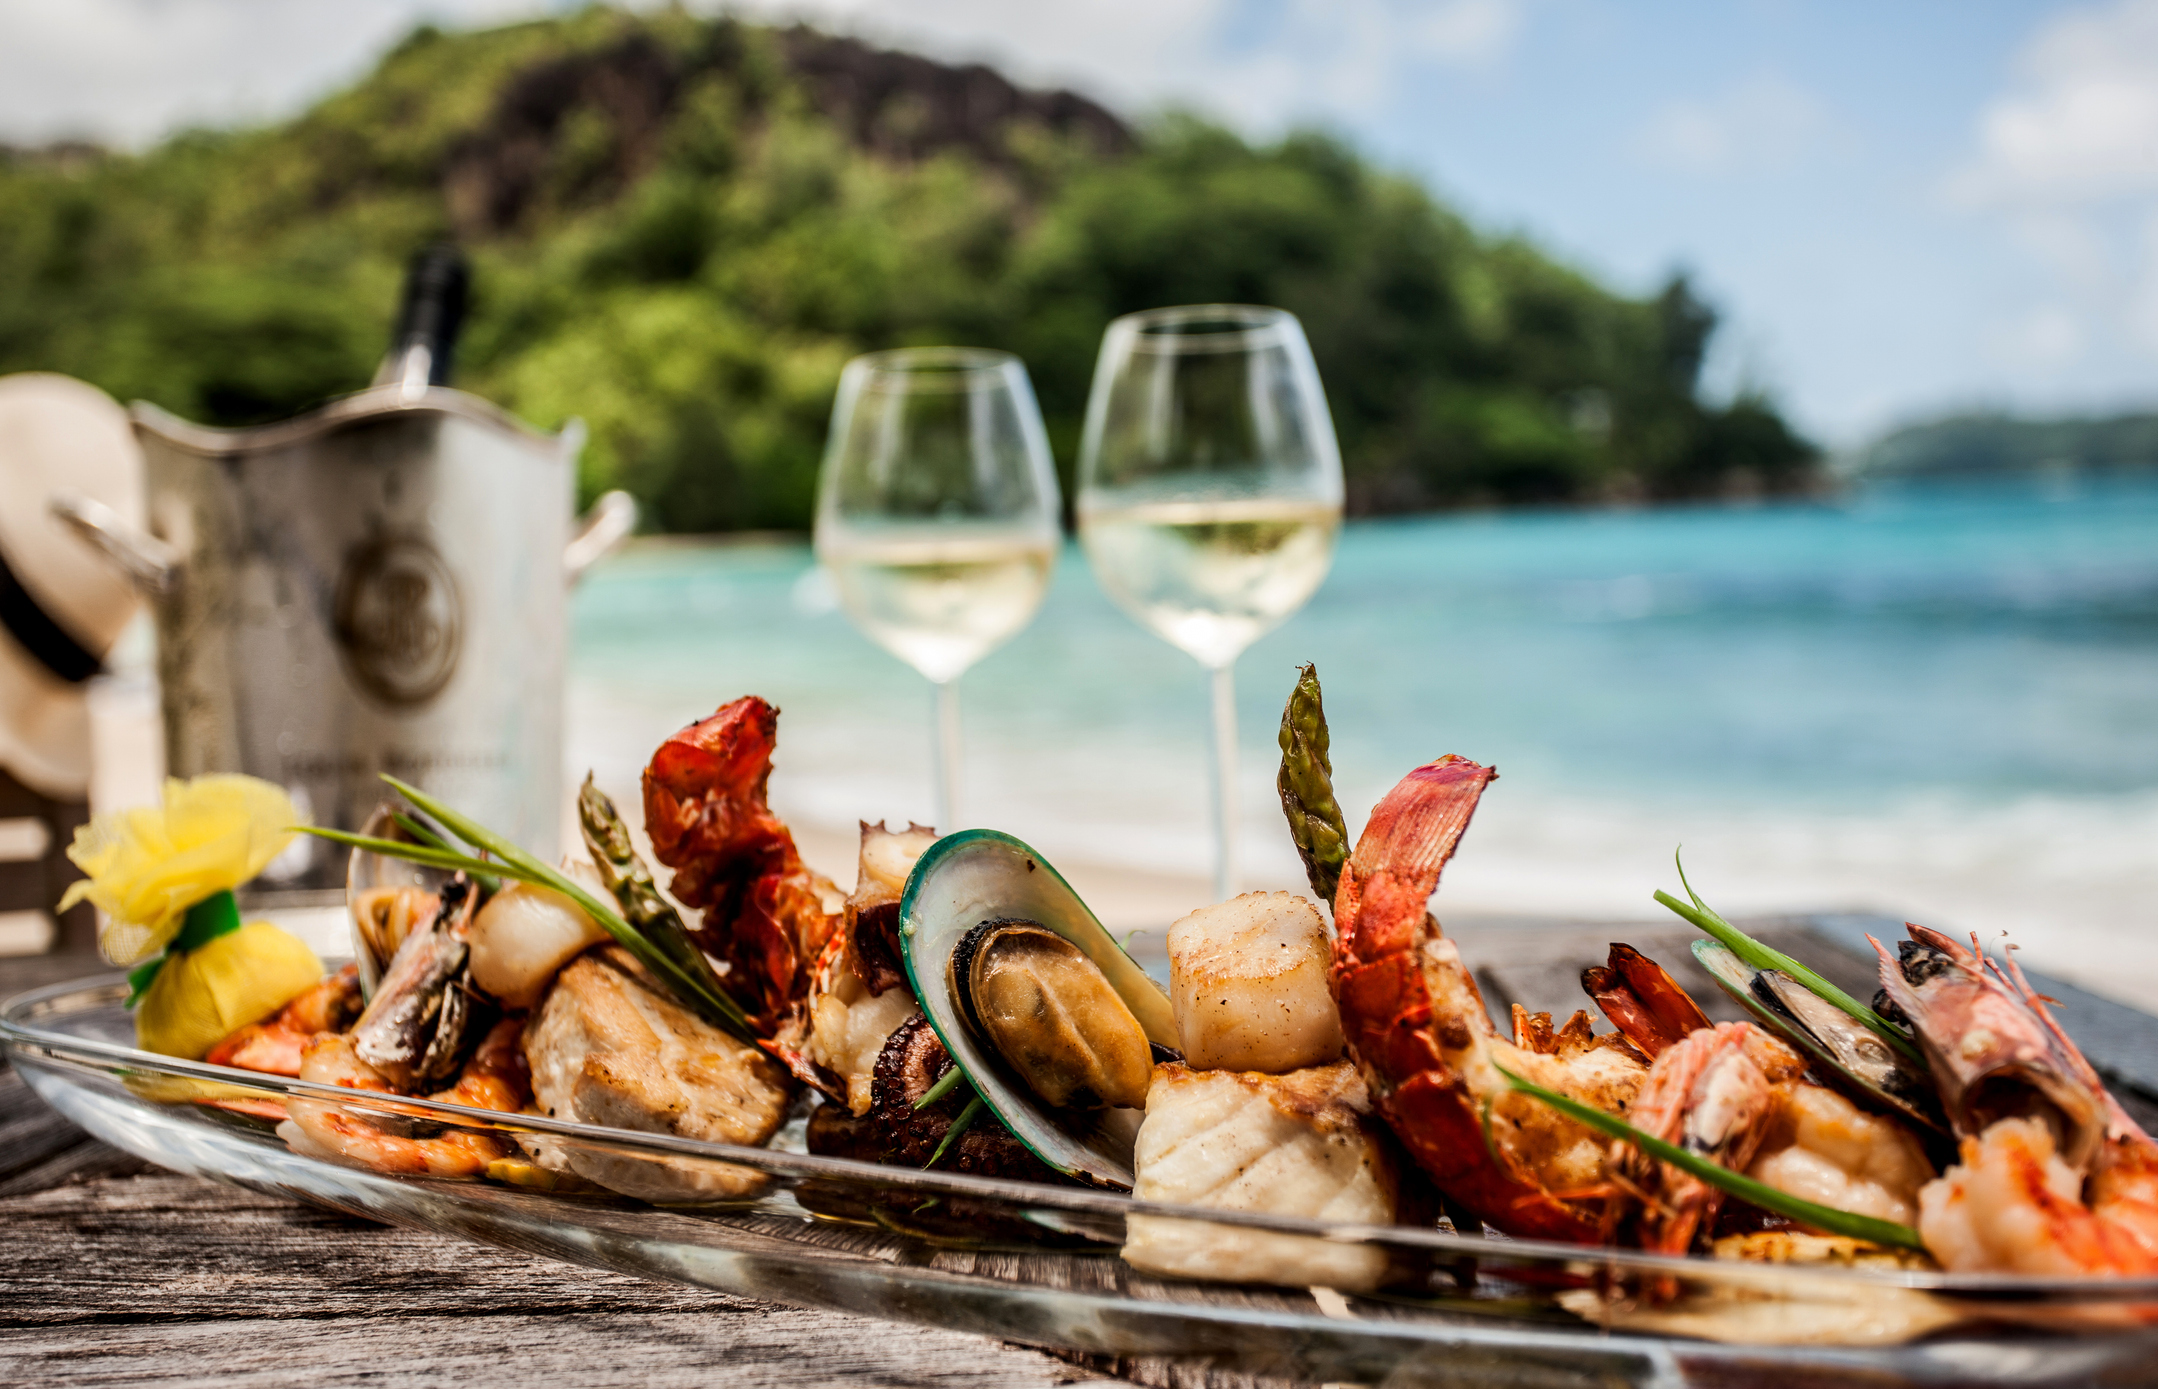 Cigars and Seafood: A Match Made in Heaven